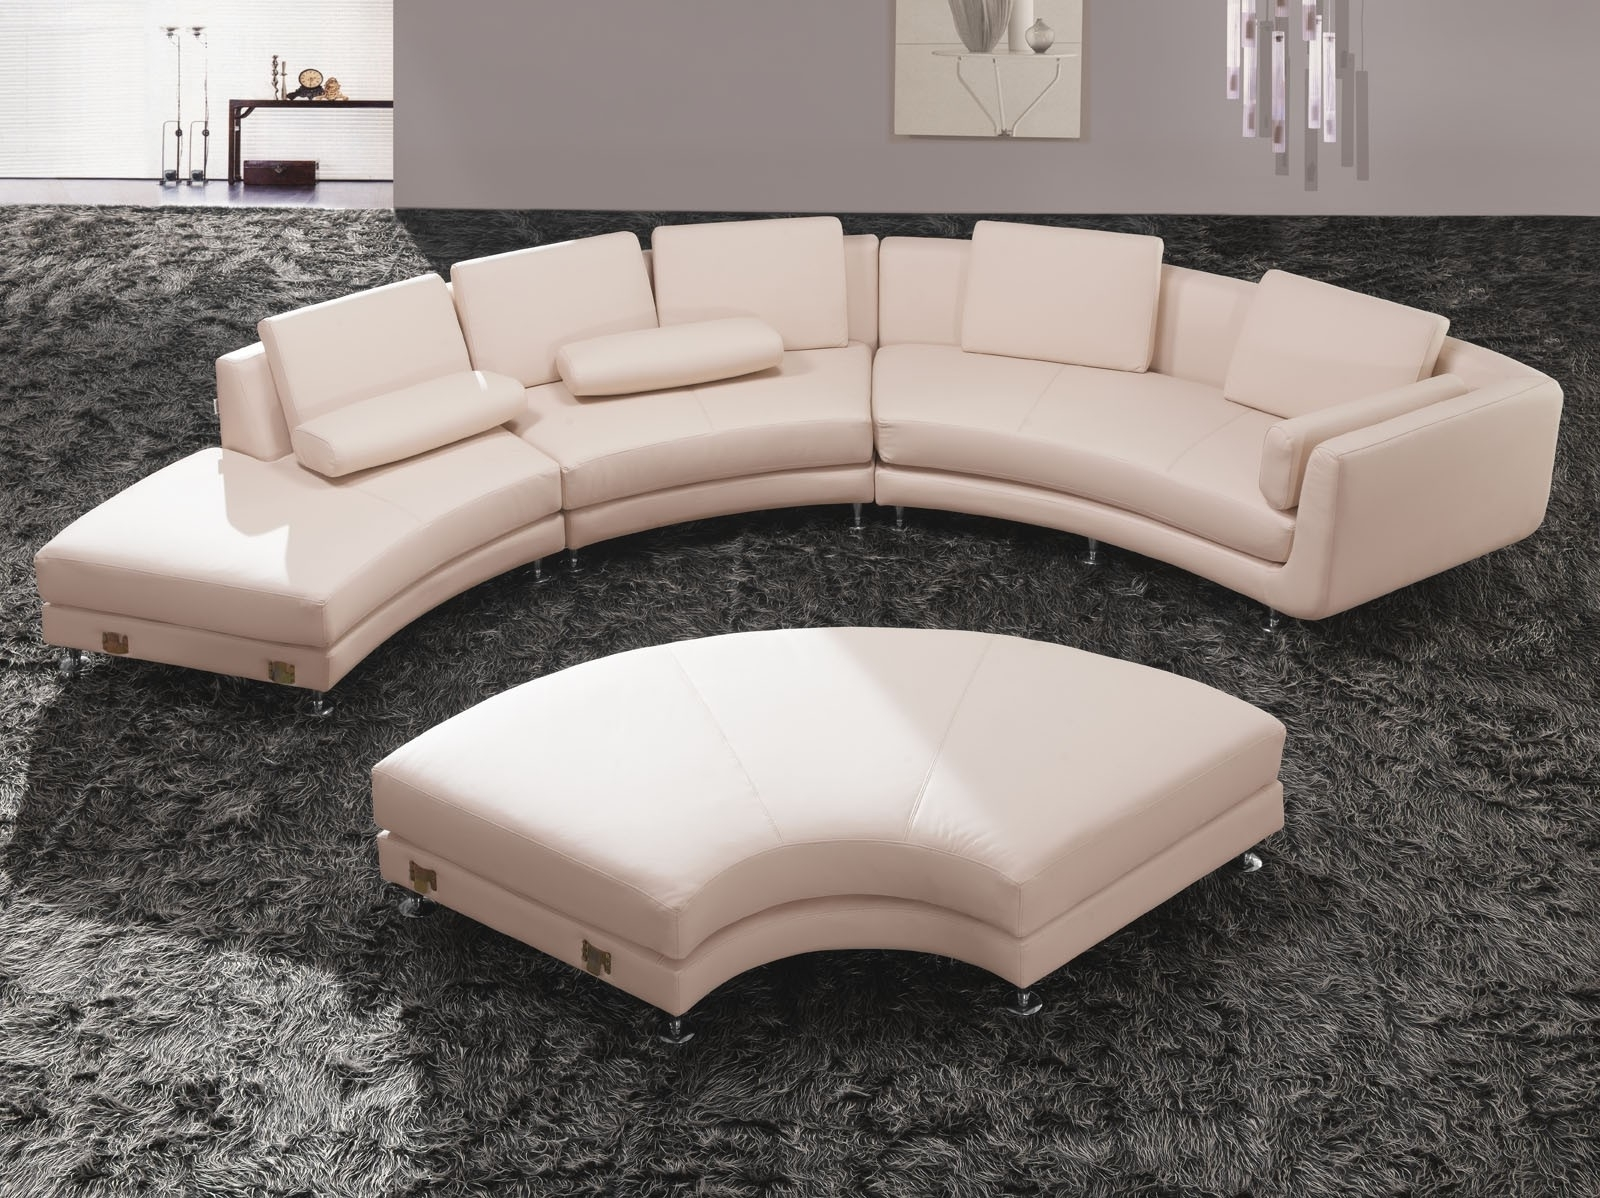 Sofa : Glamorous Round Sectional Sofa Bed Curved Leather Tufted Throughout Current Round Sofas (View 8 of 20)